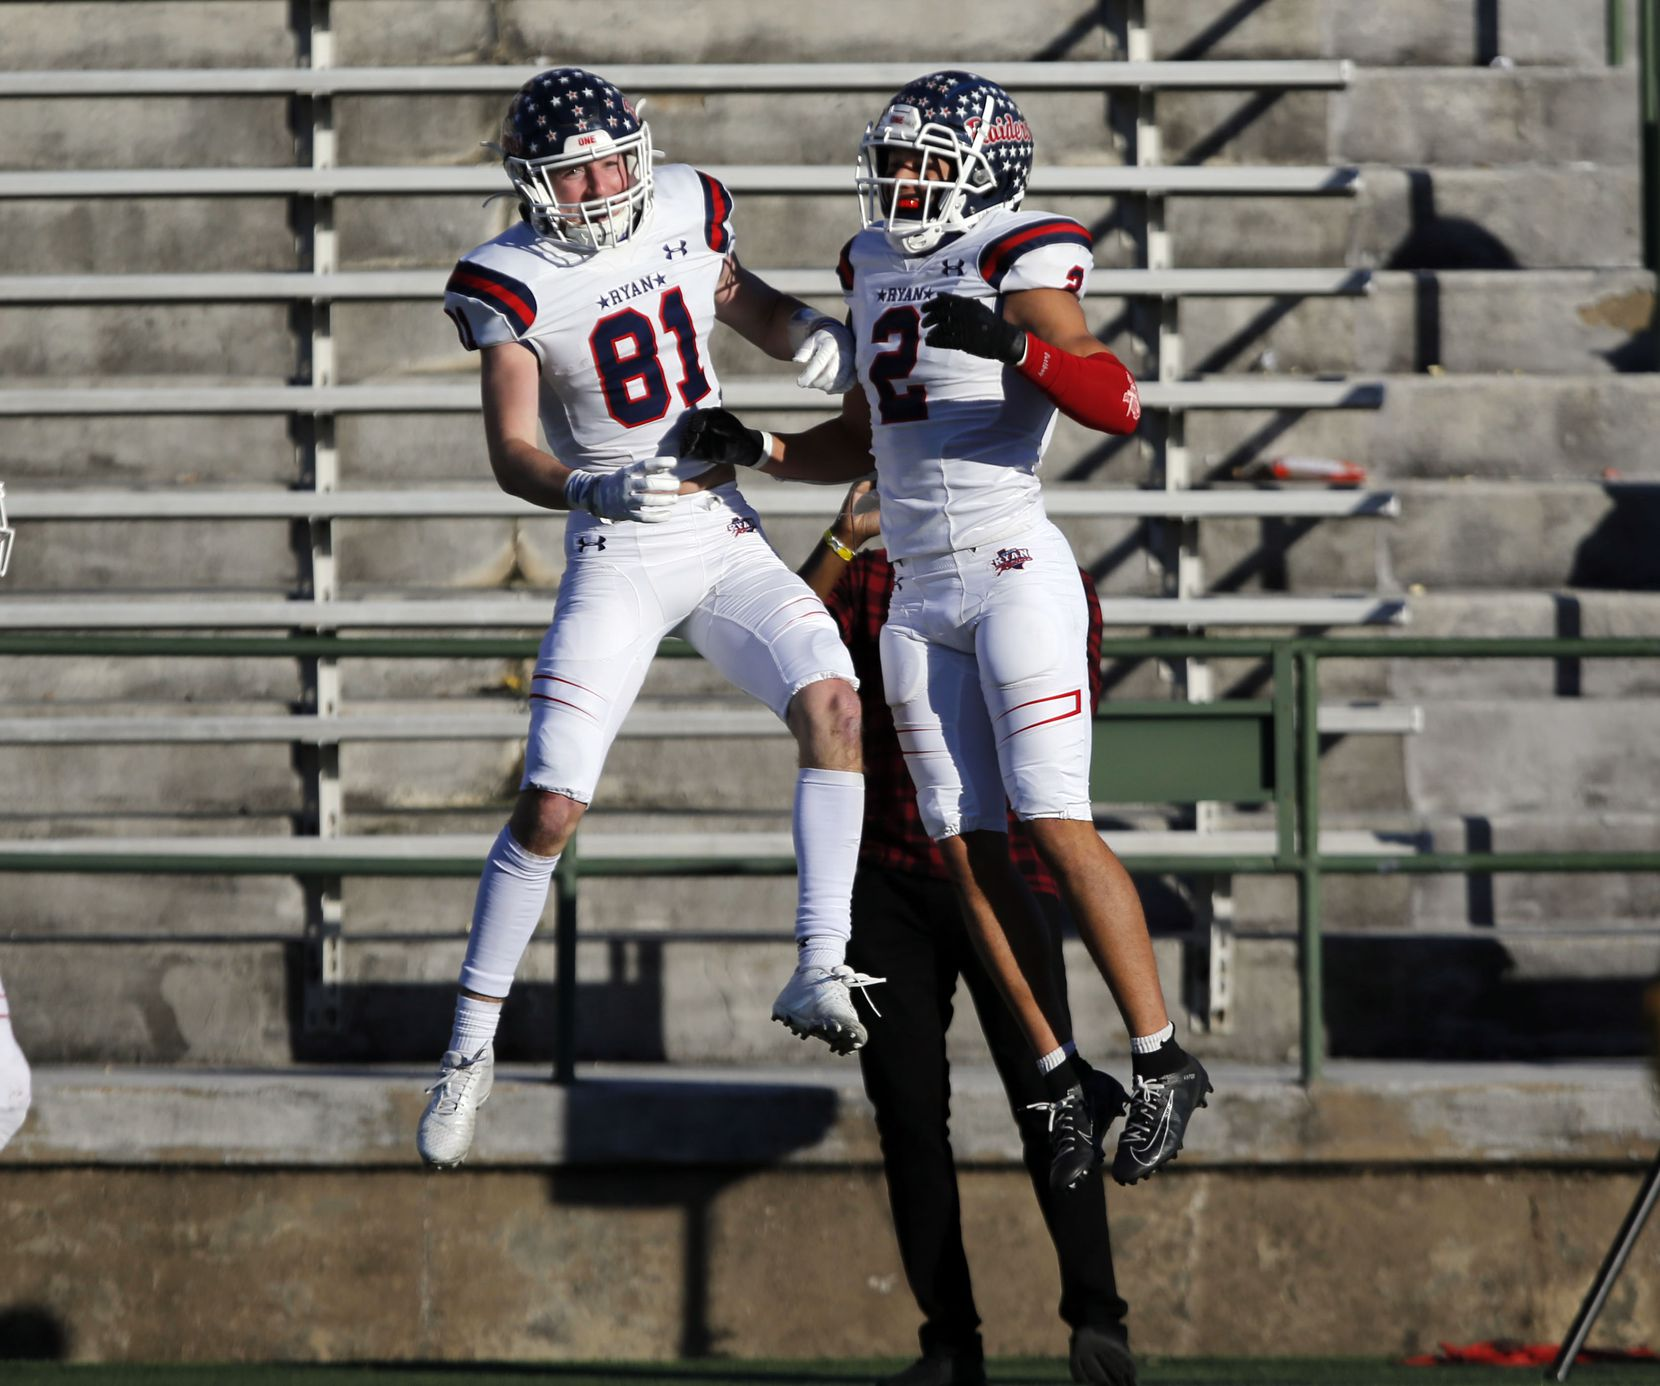 Denton Ryan's Keagan Cunningham (81) and Billy Bowman Jr. (2) celebrate after Cunningham's touchdown catch during the first half of a Class 5A Division I Region I semifinal football playoff game against Longview High at Mesquite Memorial  Stadium in Mesquite on Saturday, December 26, 2020. (John F. Rhodes / Special Contributor)